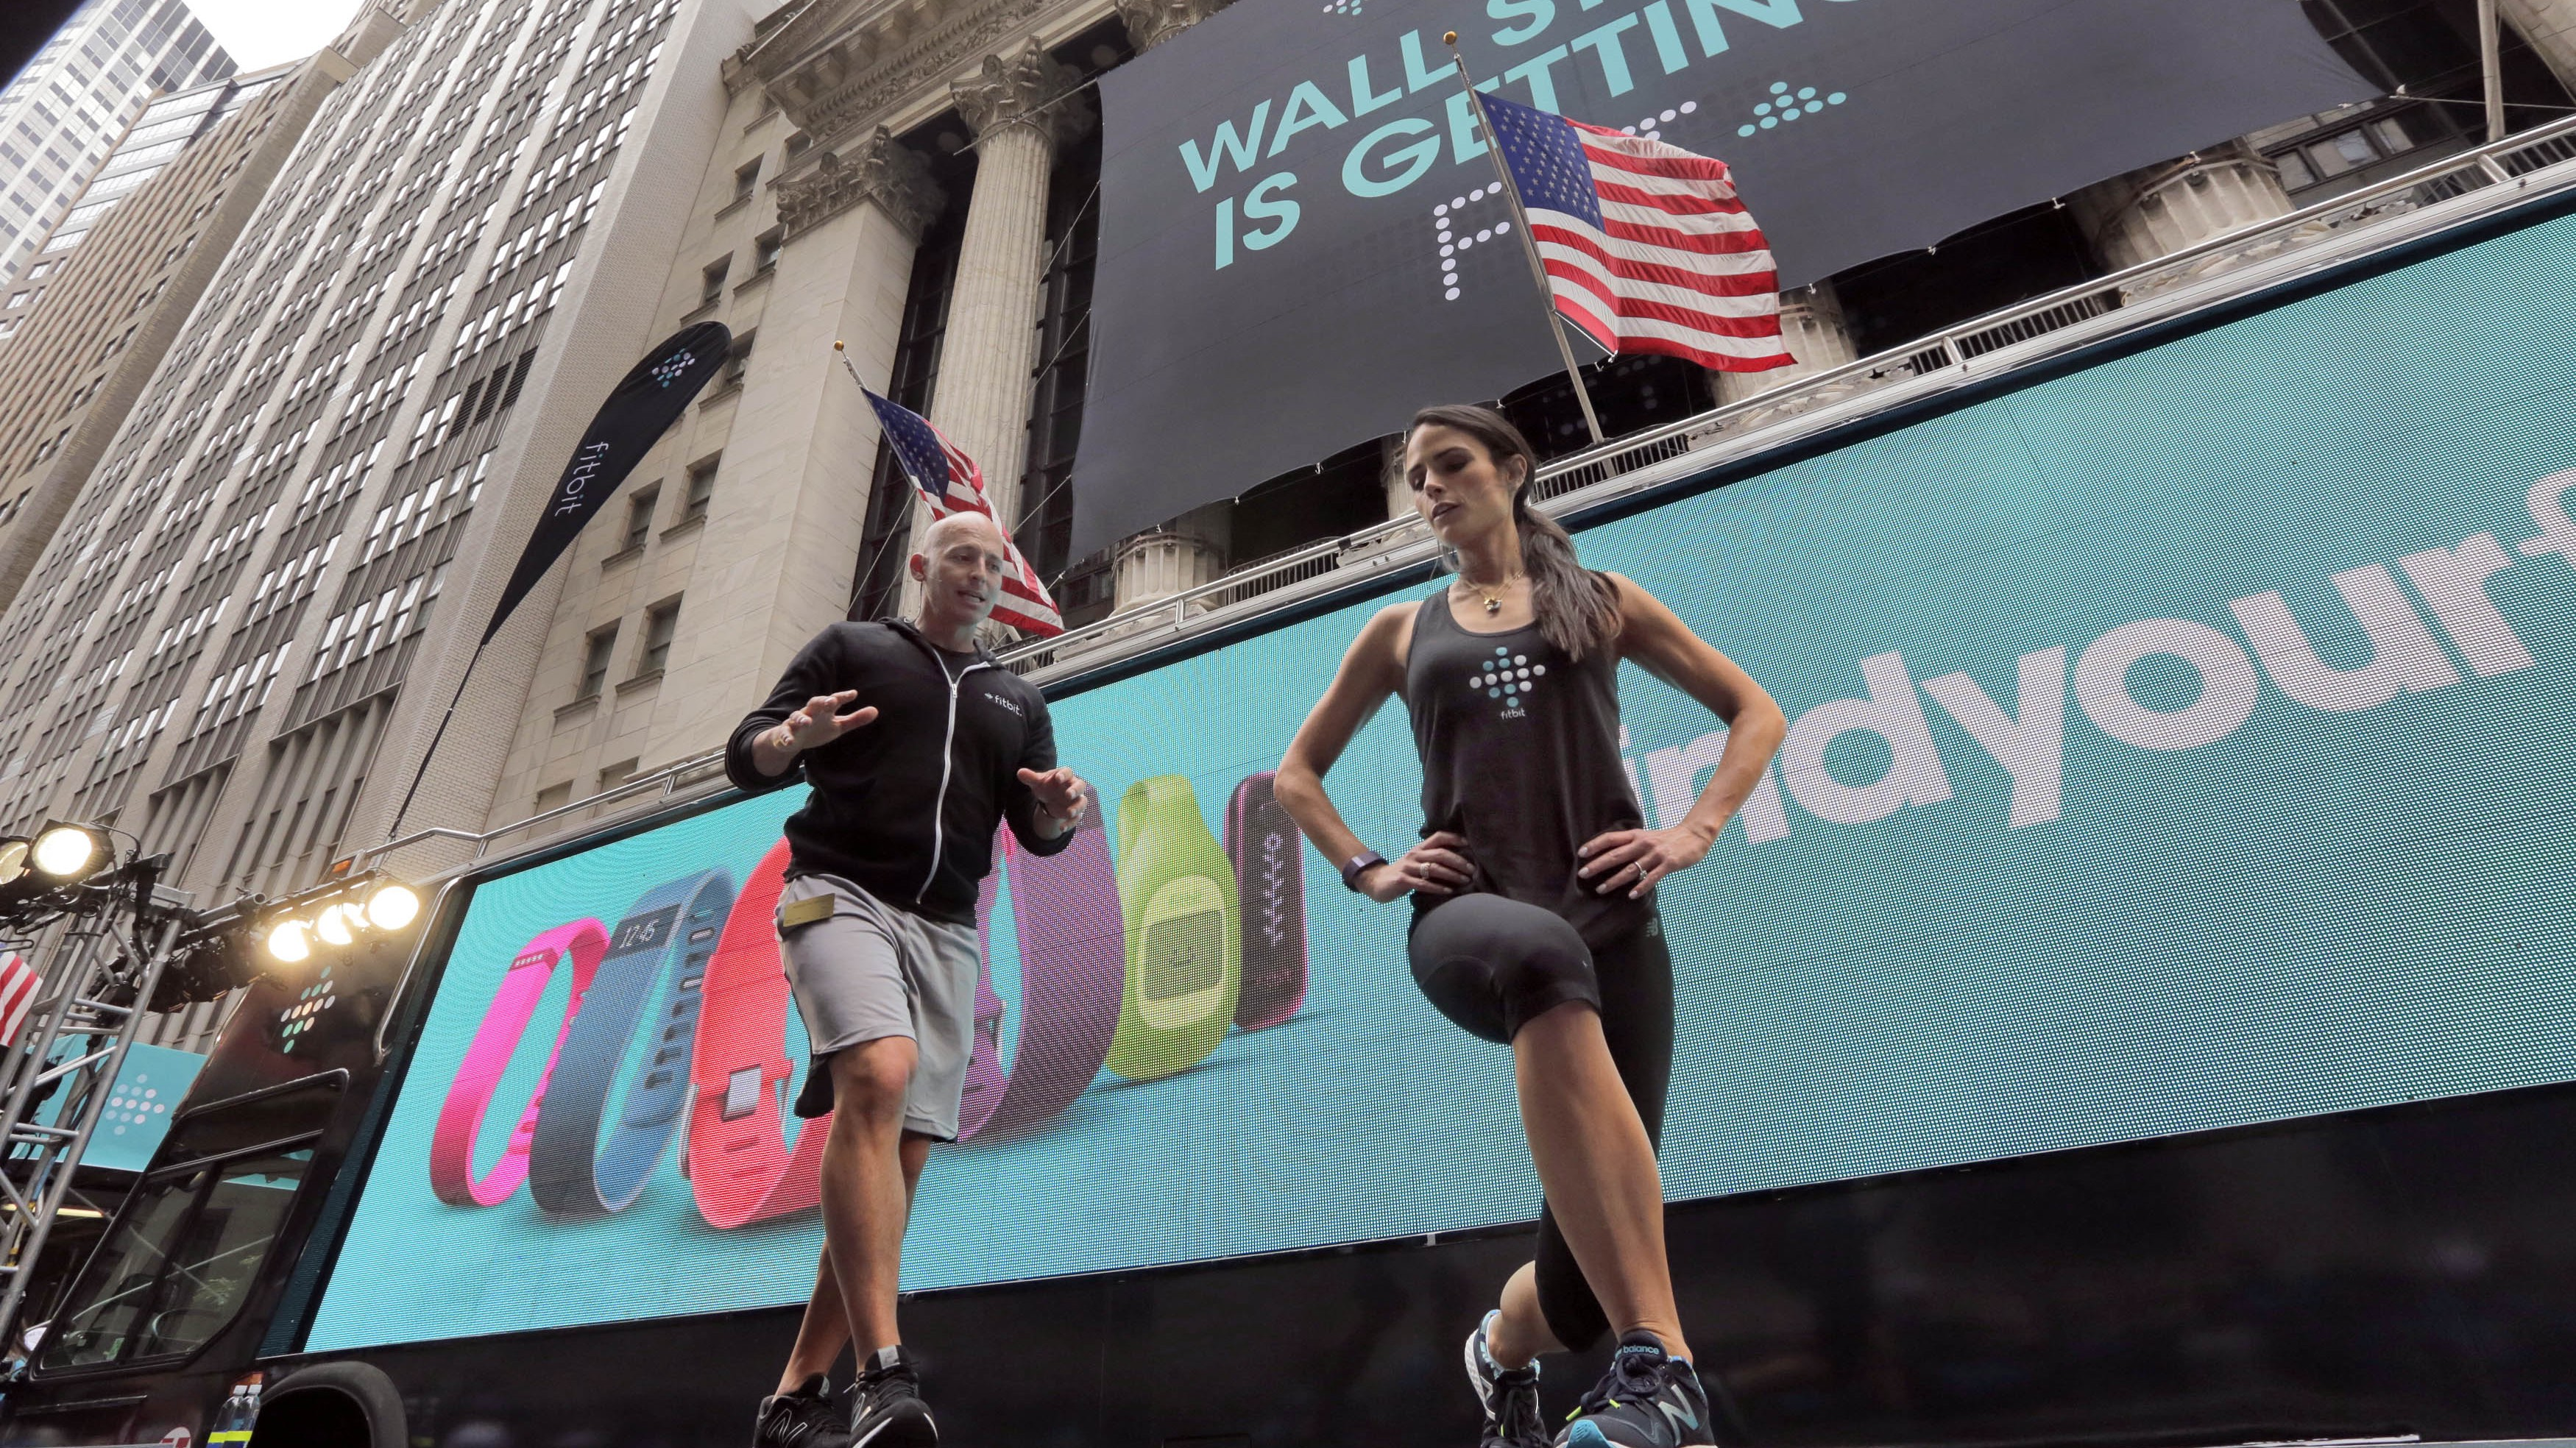 Fitness expert Harley Pasternak and actress Jordana Brewster lead a work out, on behalf of Fitbit, in front of the New York Stock Exchange, Thursday, June 18, 2015. Fitbit flexed some muscle Thursday and its shares rocketed 50 percent higher in the first day of trading for the fitness tracking gear maker. (AP Photo/Richard Drew)